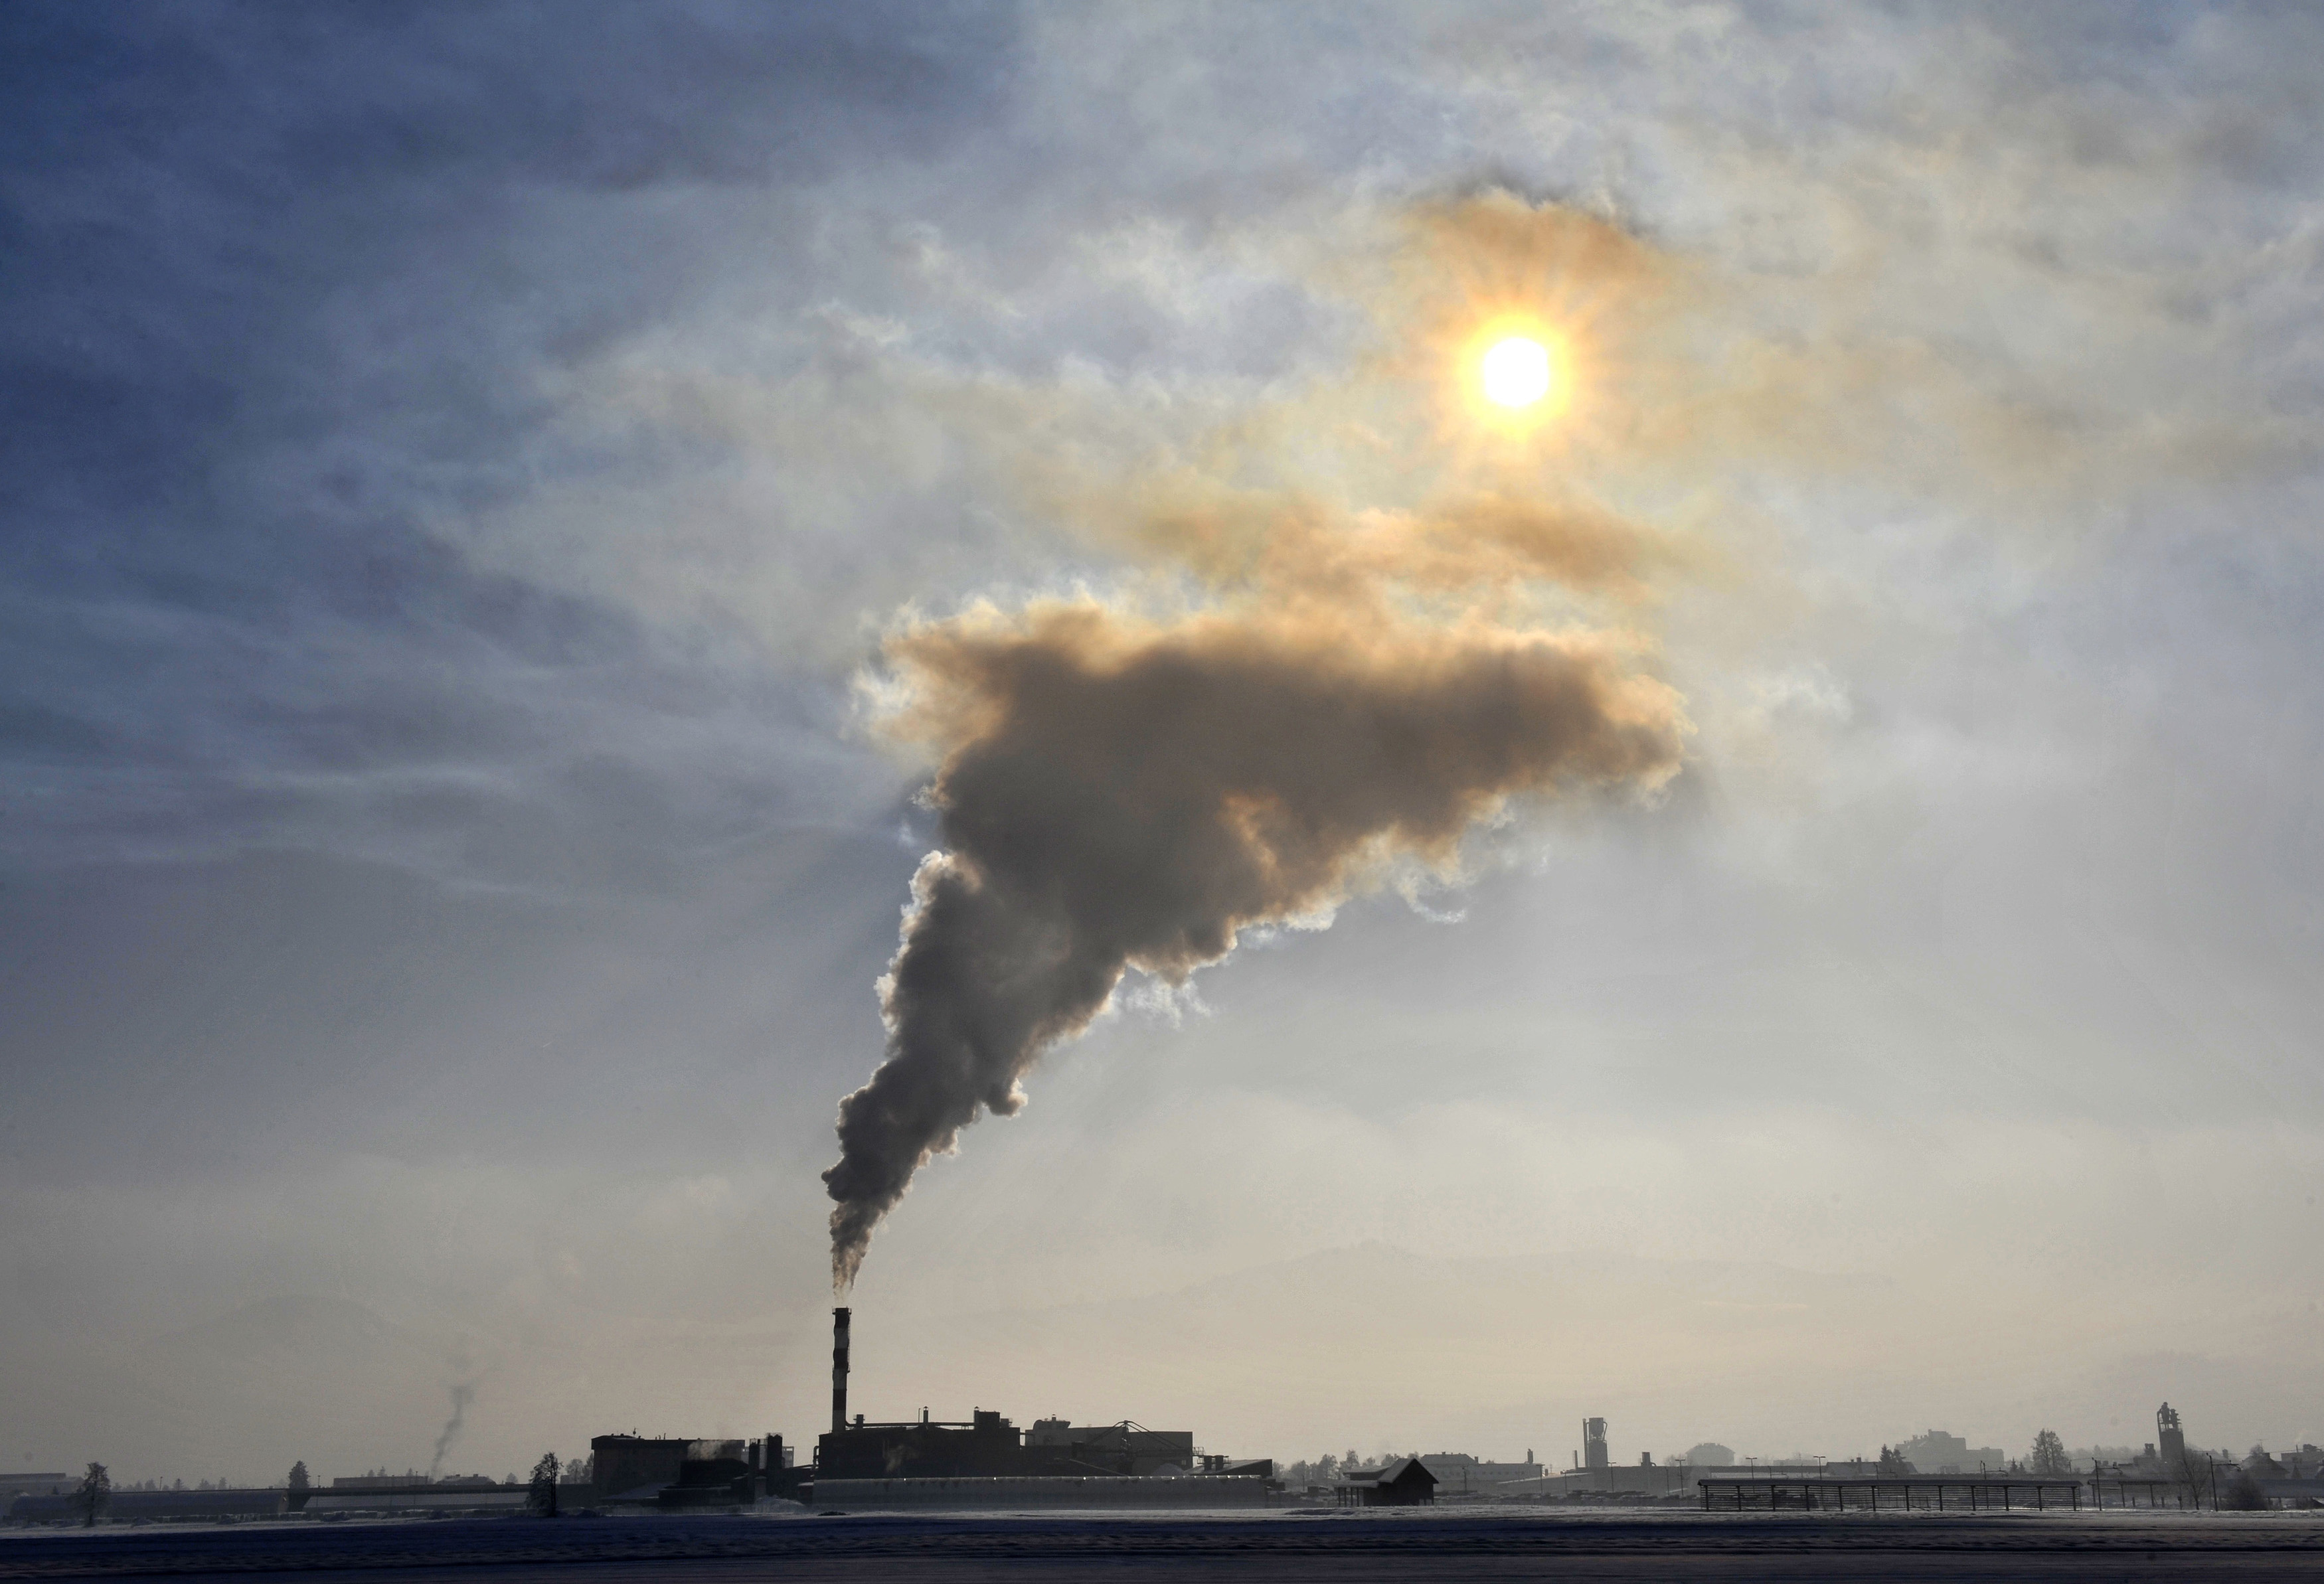 Study says Europe is 21 years behind its emissions reduction goals